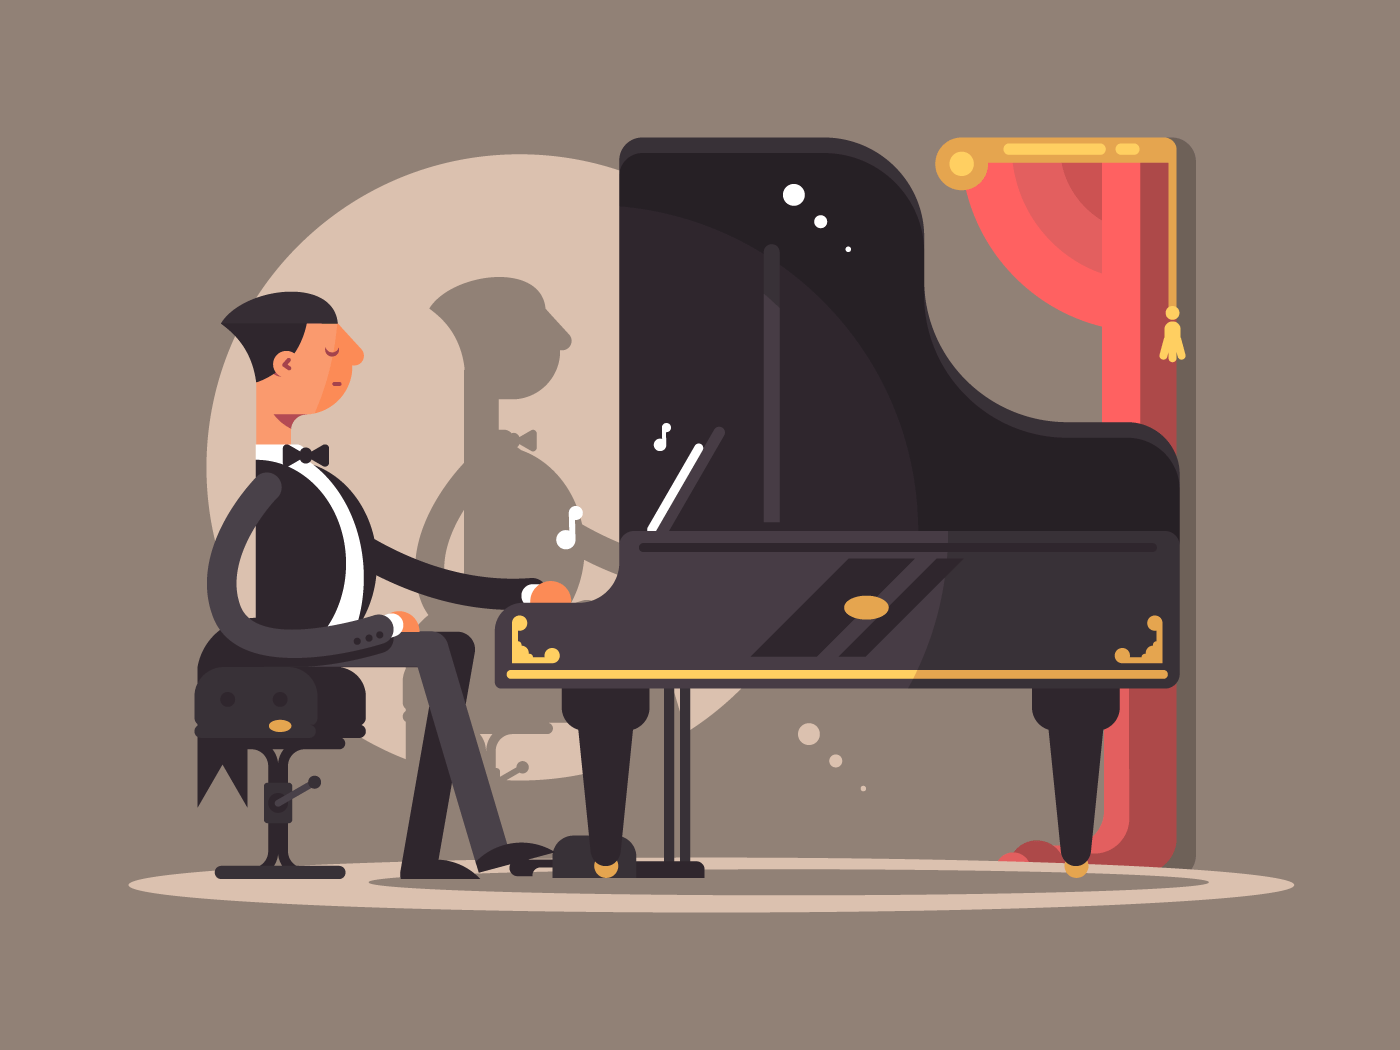 Pianist performs at concert flat vector illustration